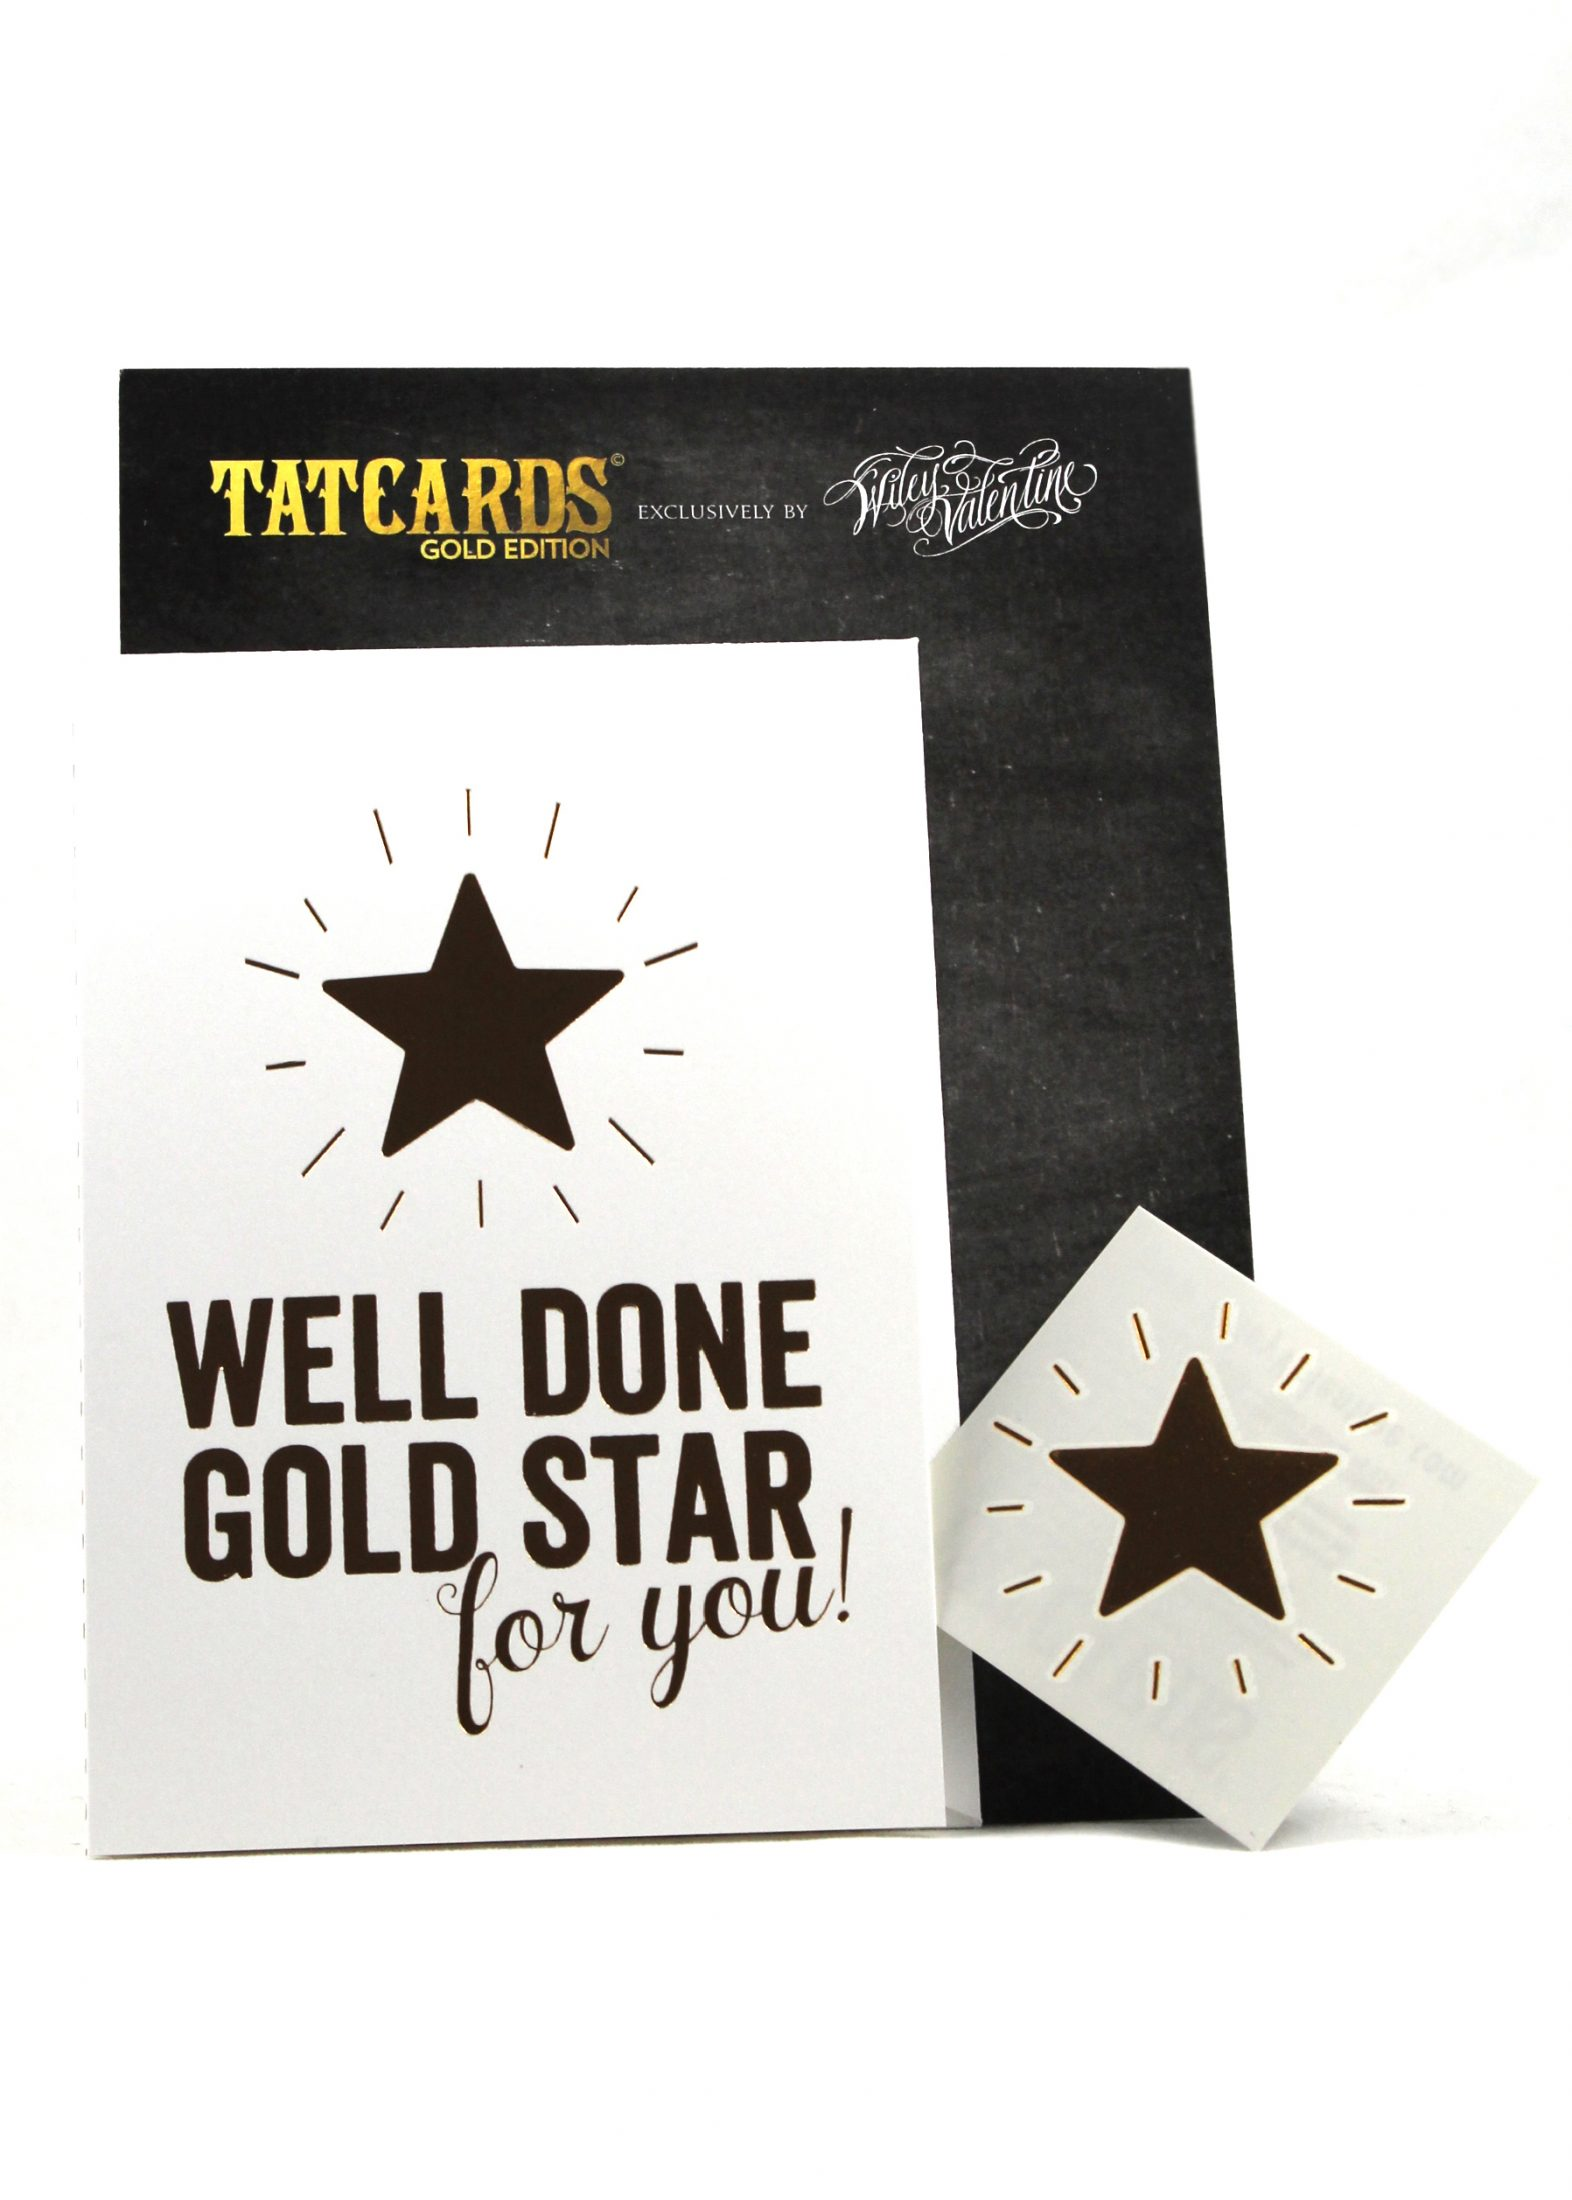 well done gold star for you